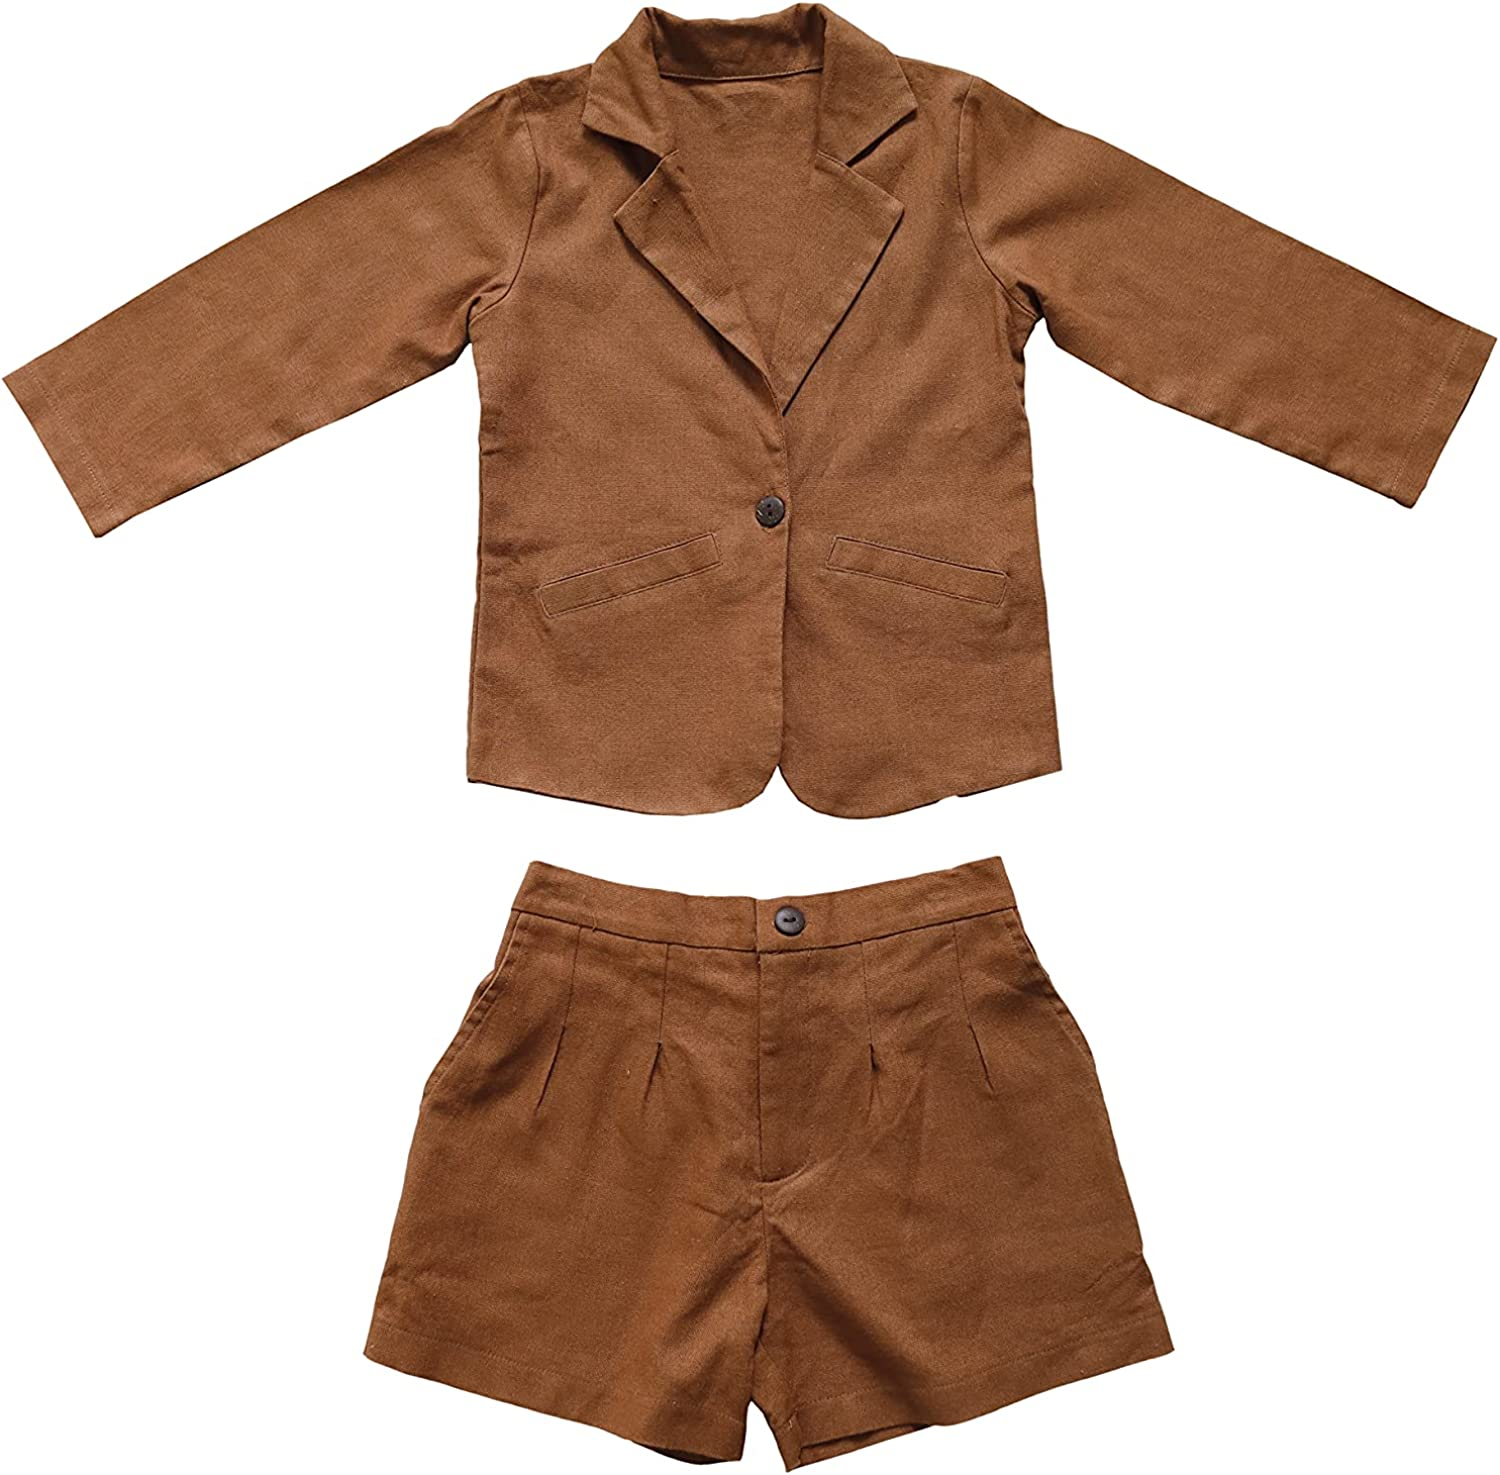 HANDCRAFTED BY UYEN Baby Boy Suit Toddler Boy's Vest Set Cute Long Sleeve and Short Outfits